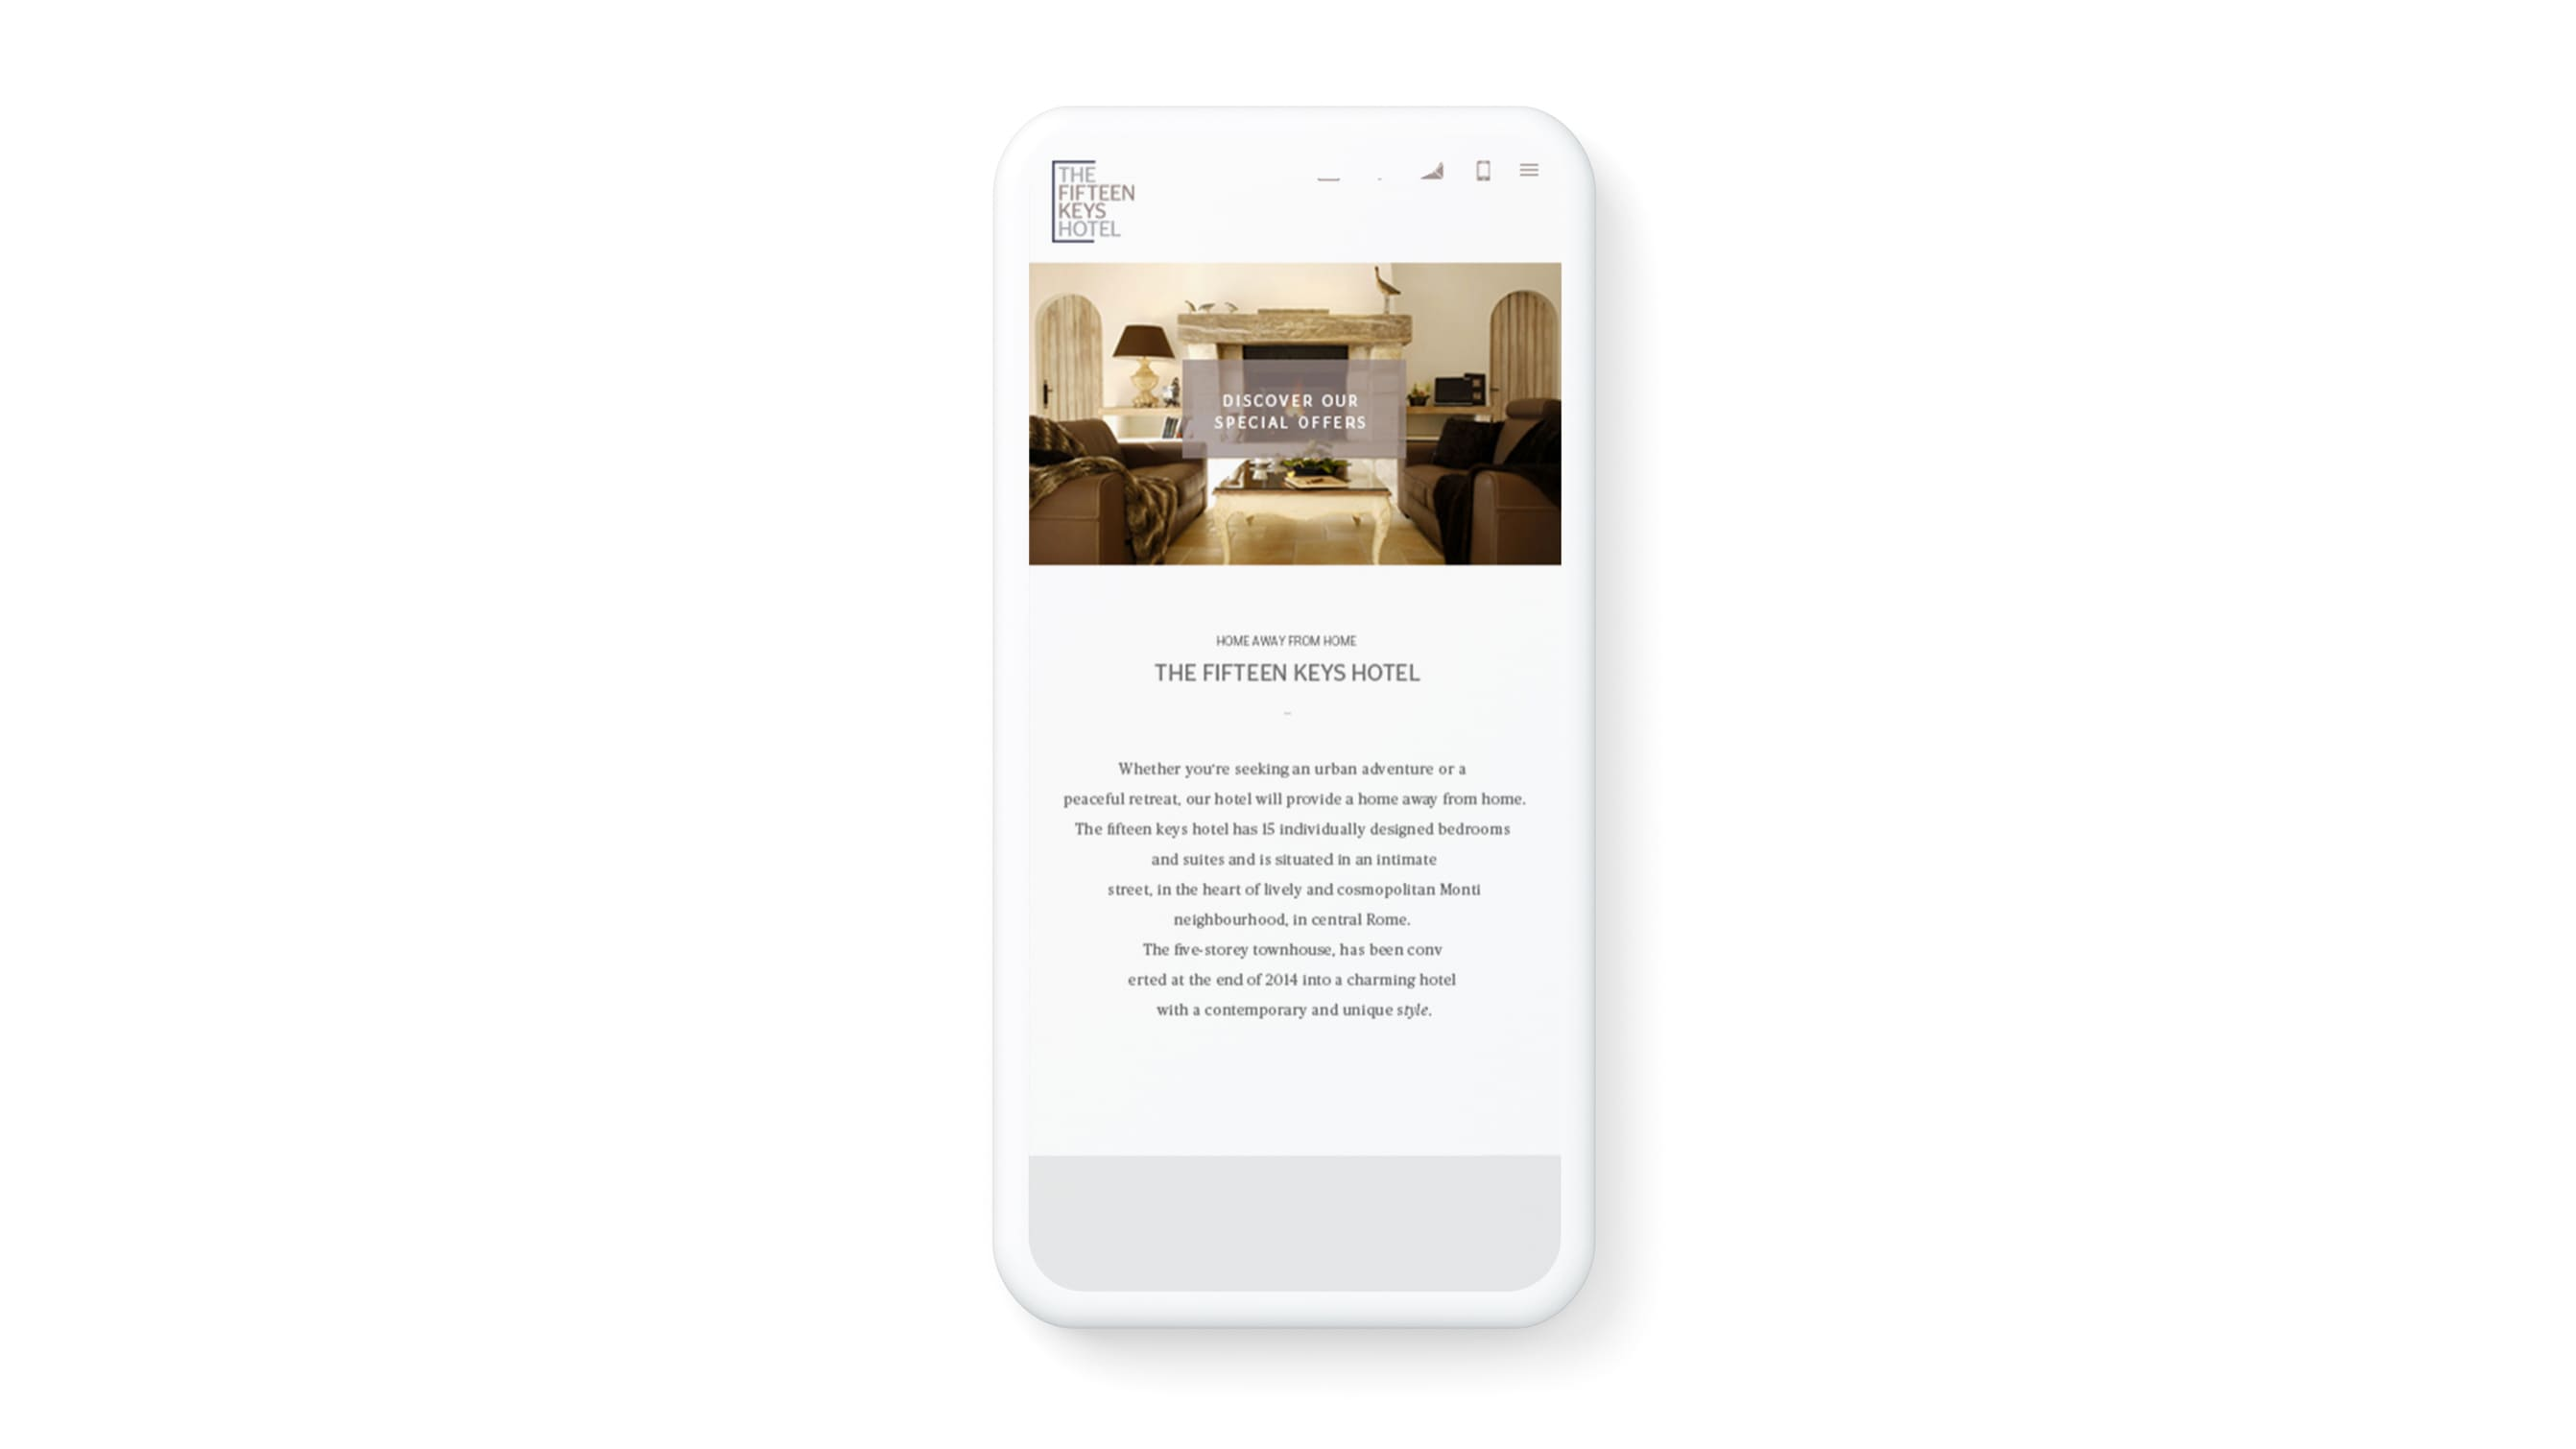 Hotel booking engine for The Fifteen Keys website - Luther Dsgn